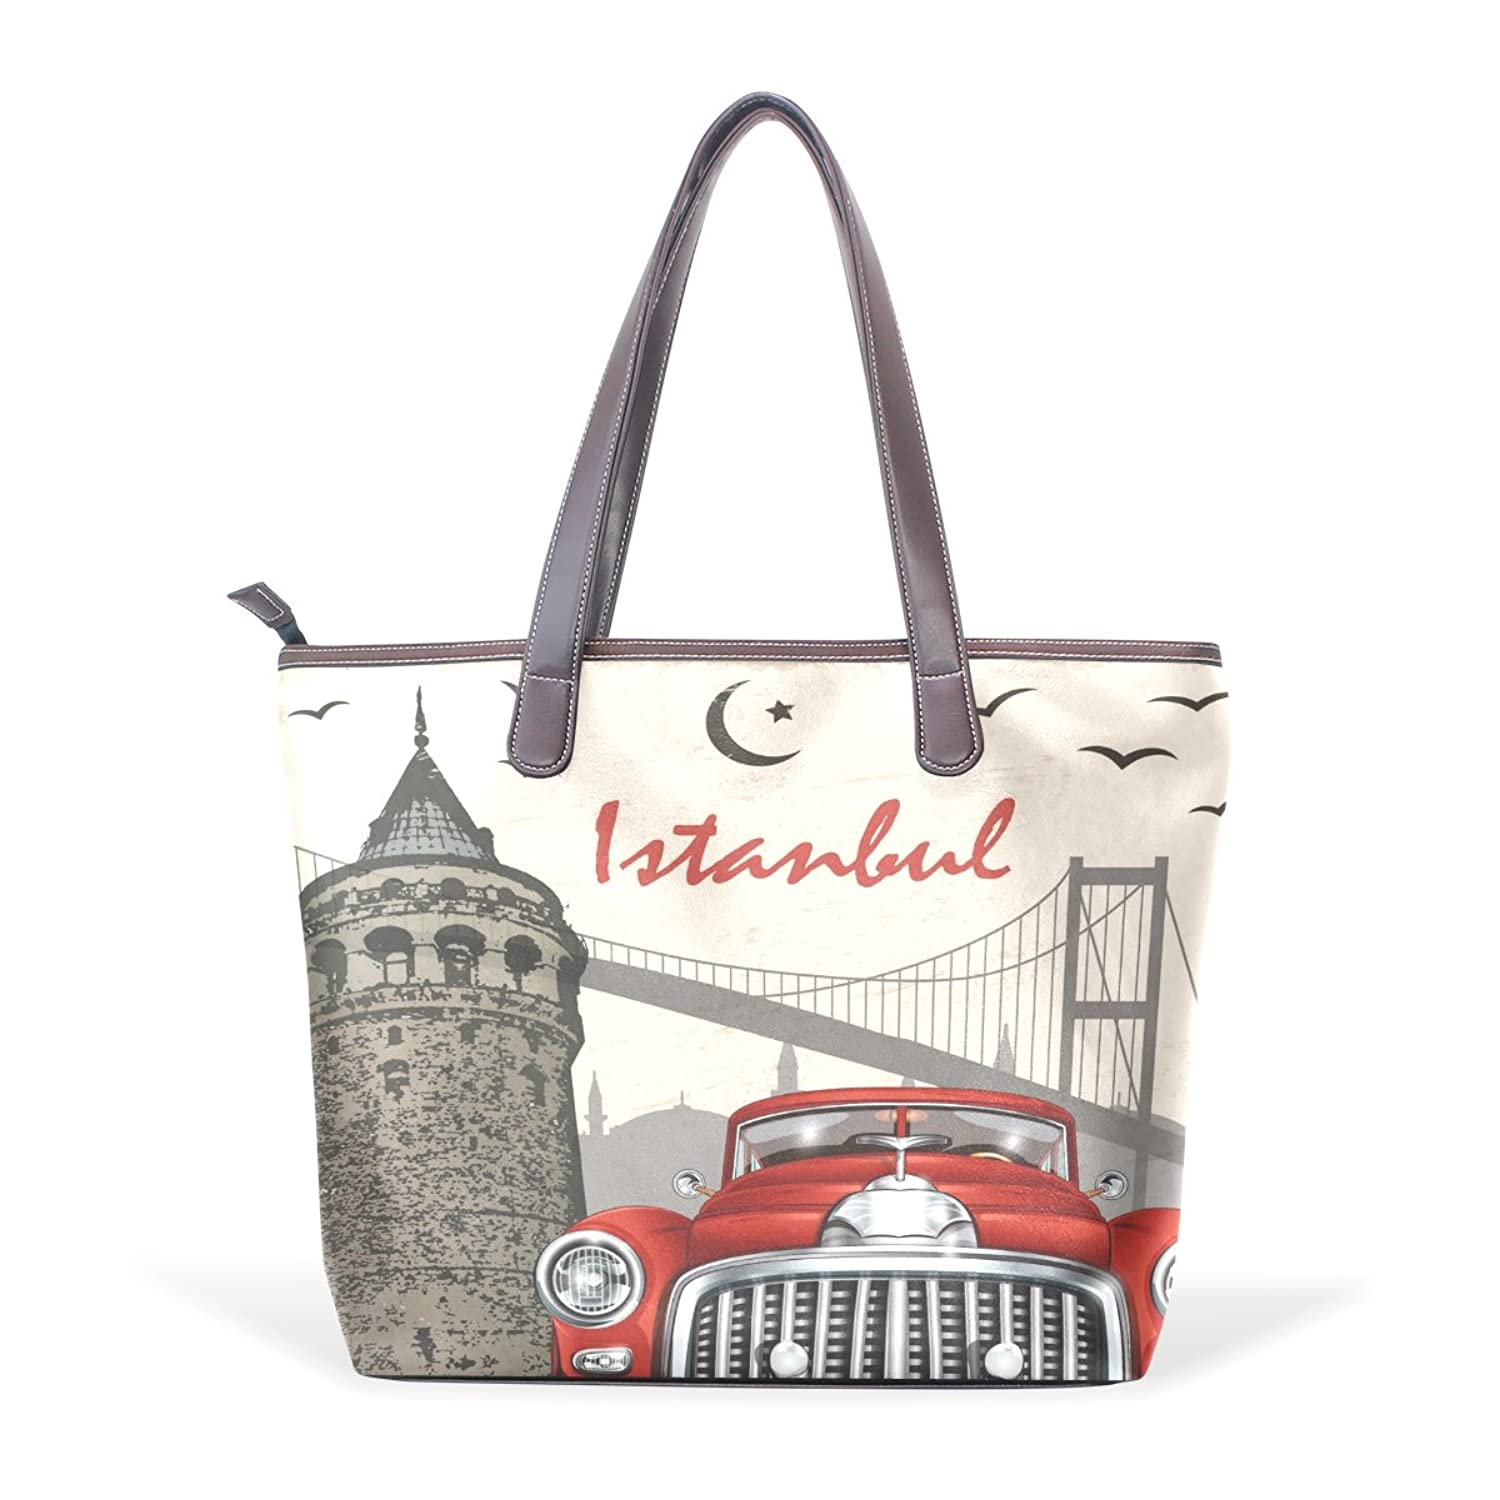 Womens Leather Tote Bag,Vintage London Old Car,Large Handbag